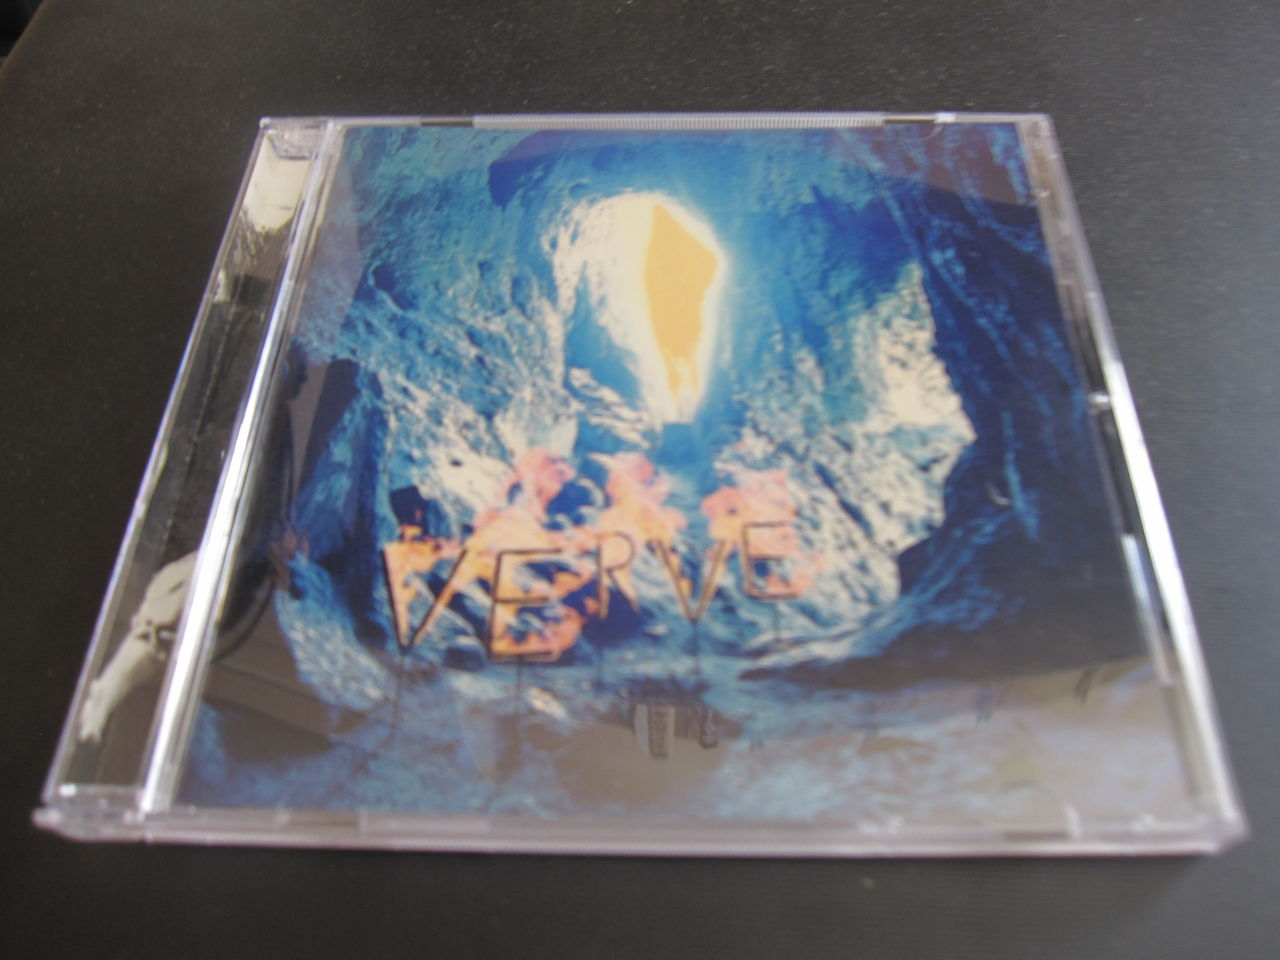 The Verveのアルバム。A Storm I...